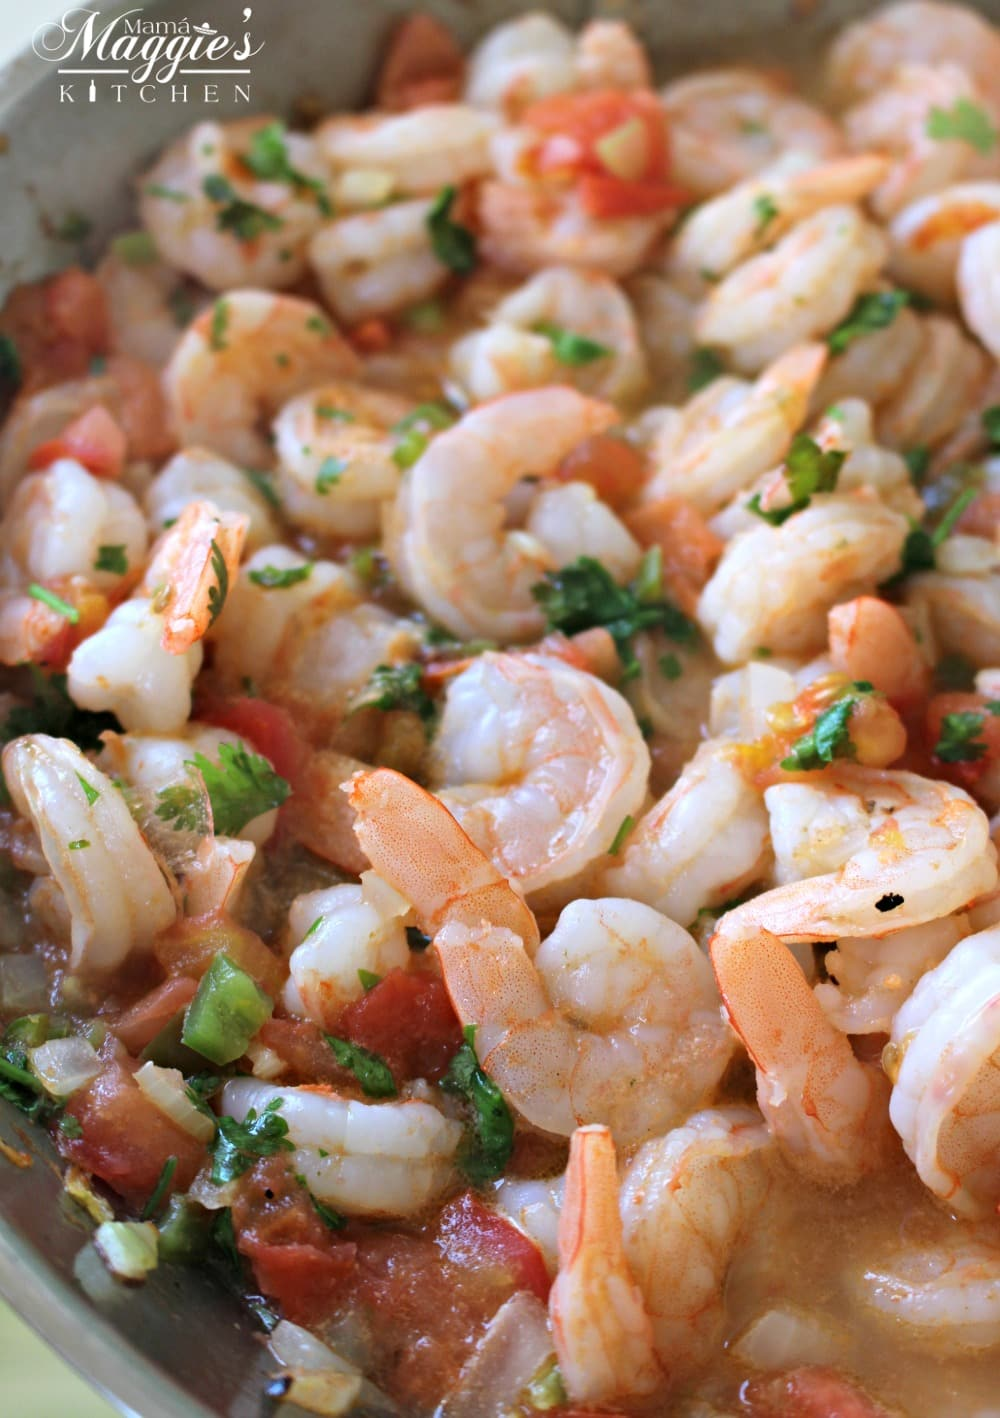 Camarones rancheros also called camarones a la mexicana or ranch-style shrimp in a skillet